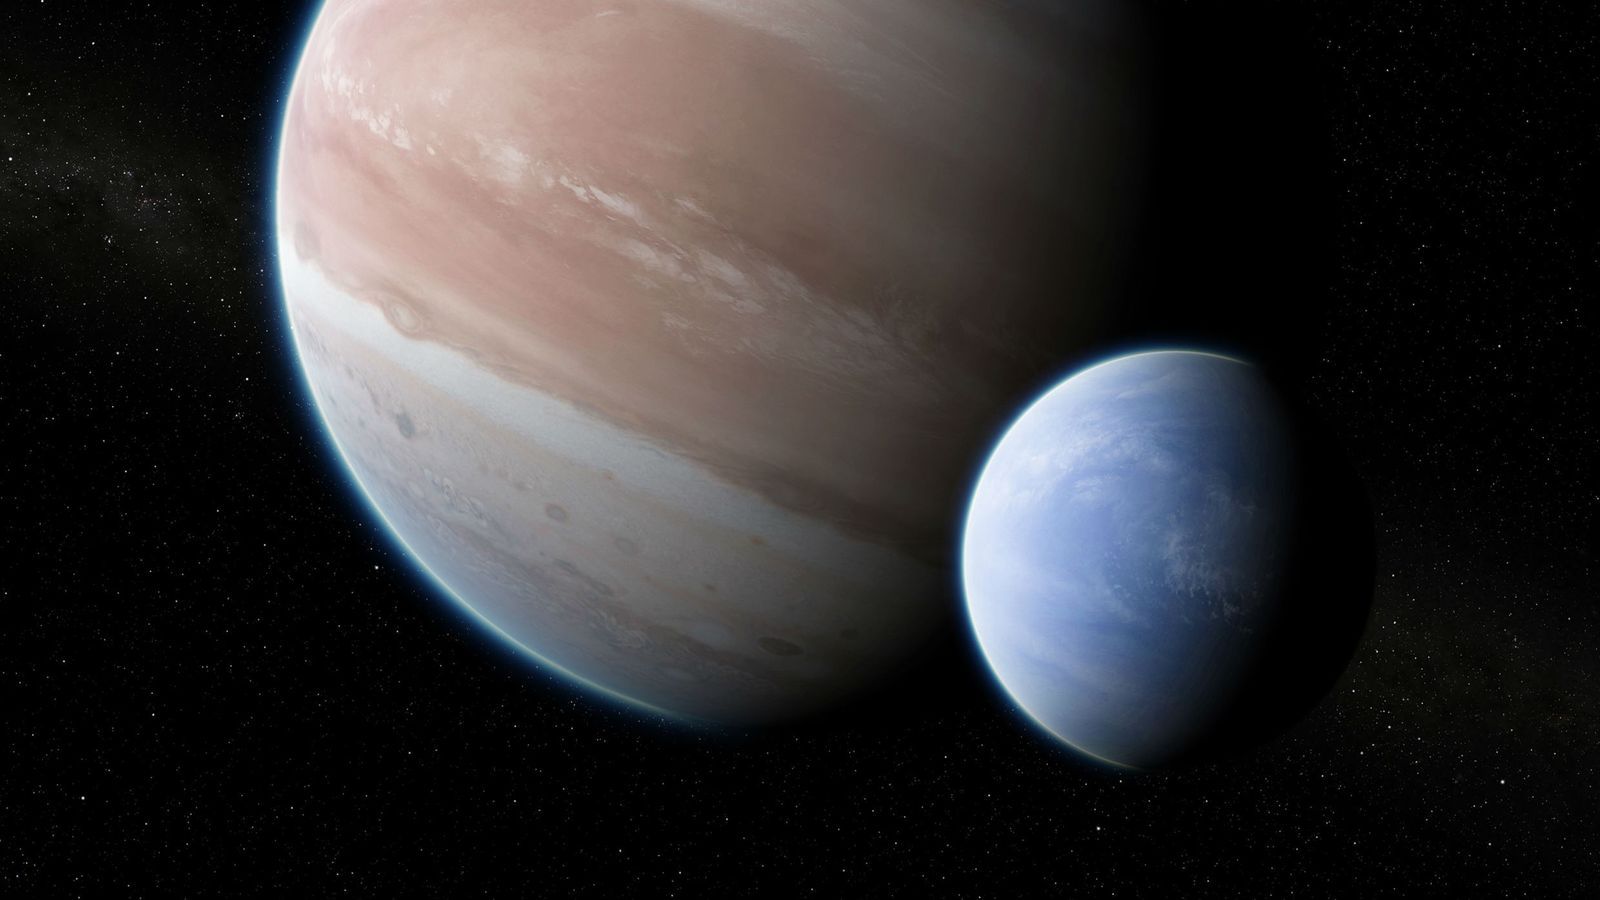 A large moon orbits the Jupiter-size planet Kepler 1625b in an illustration.